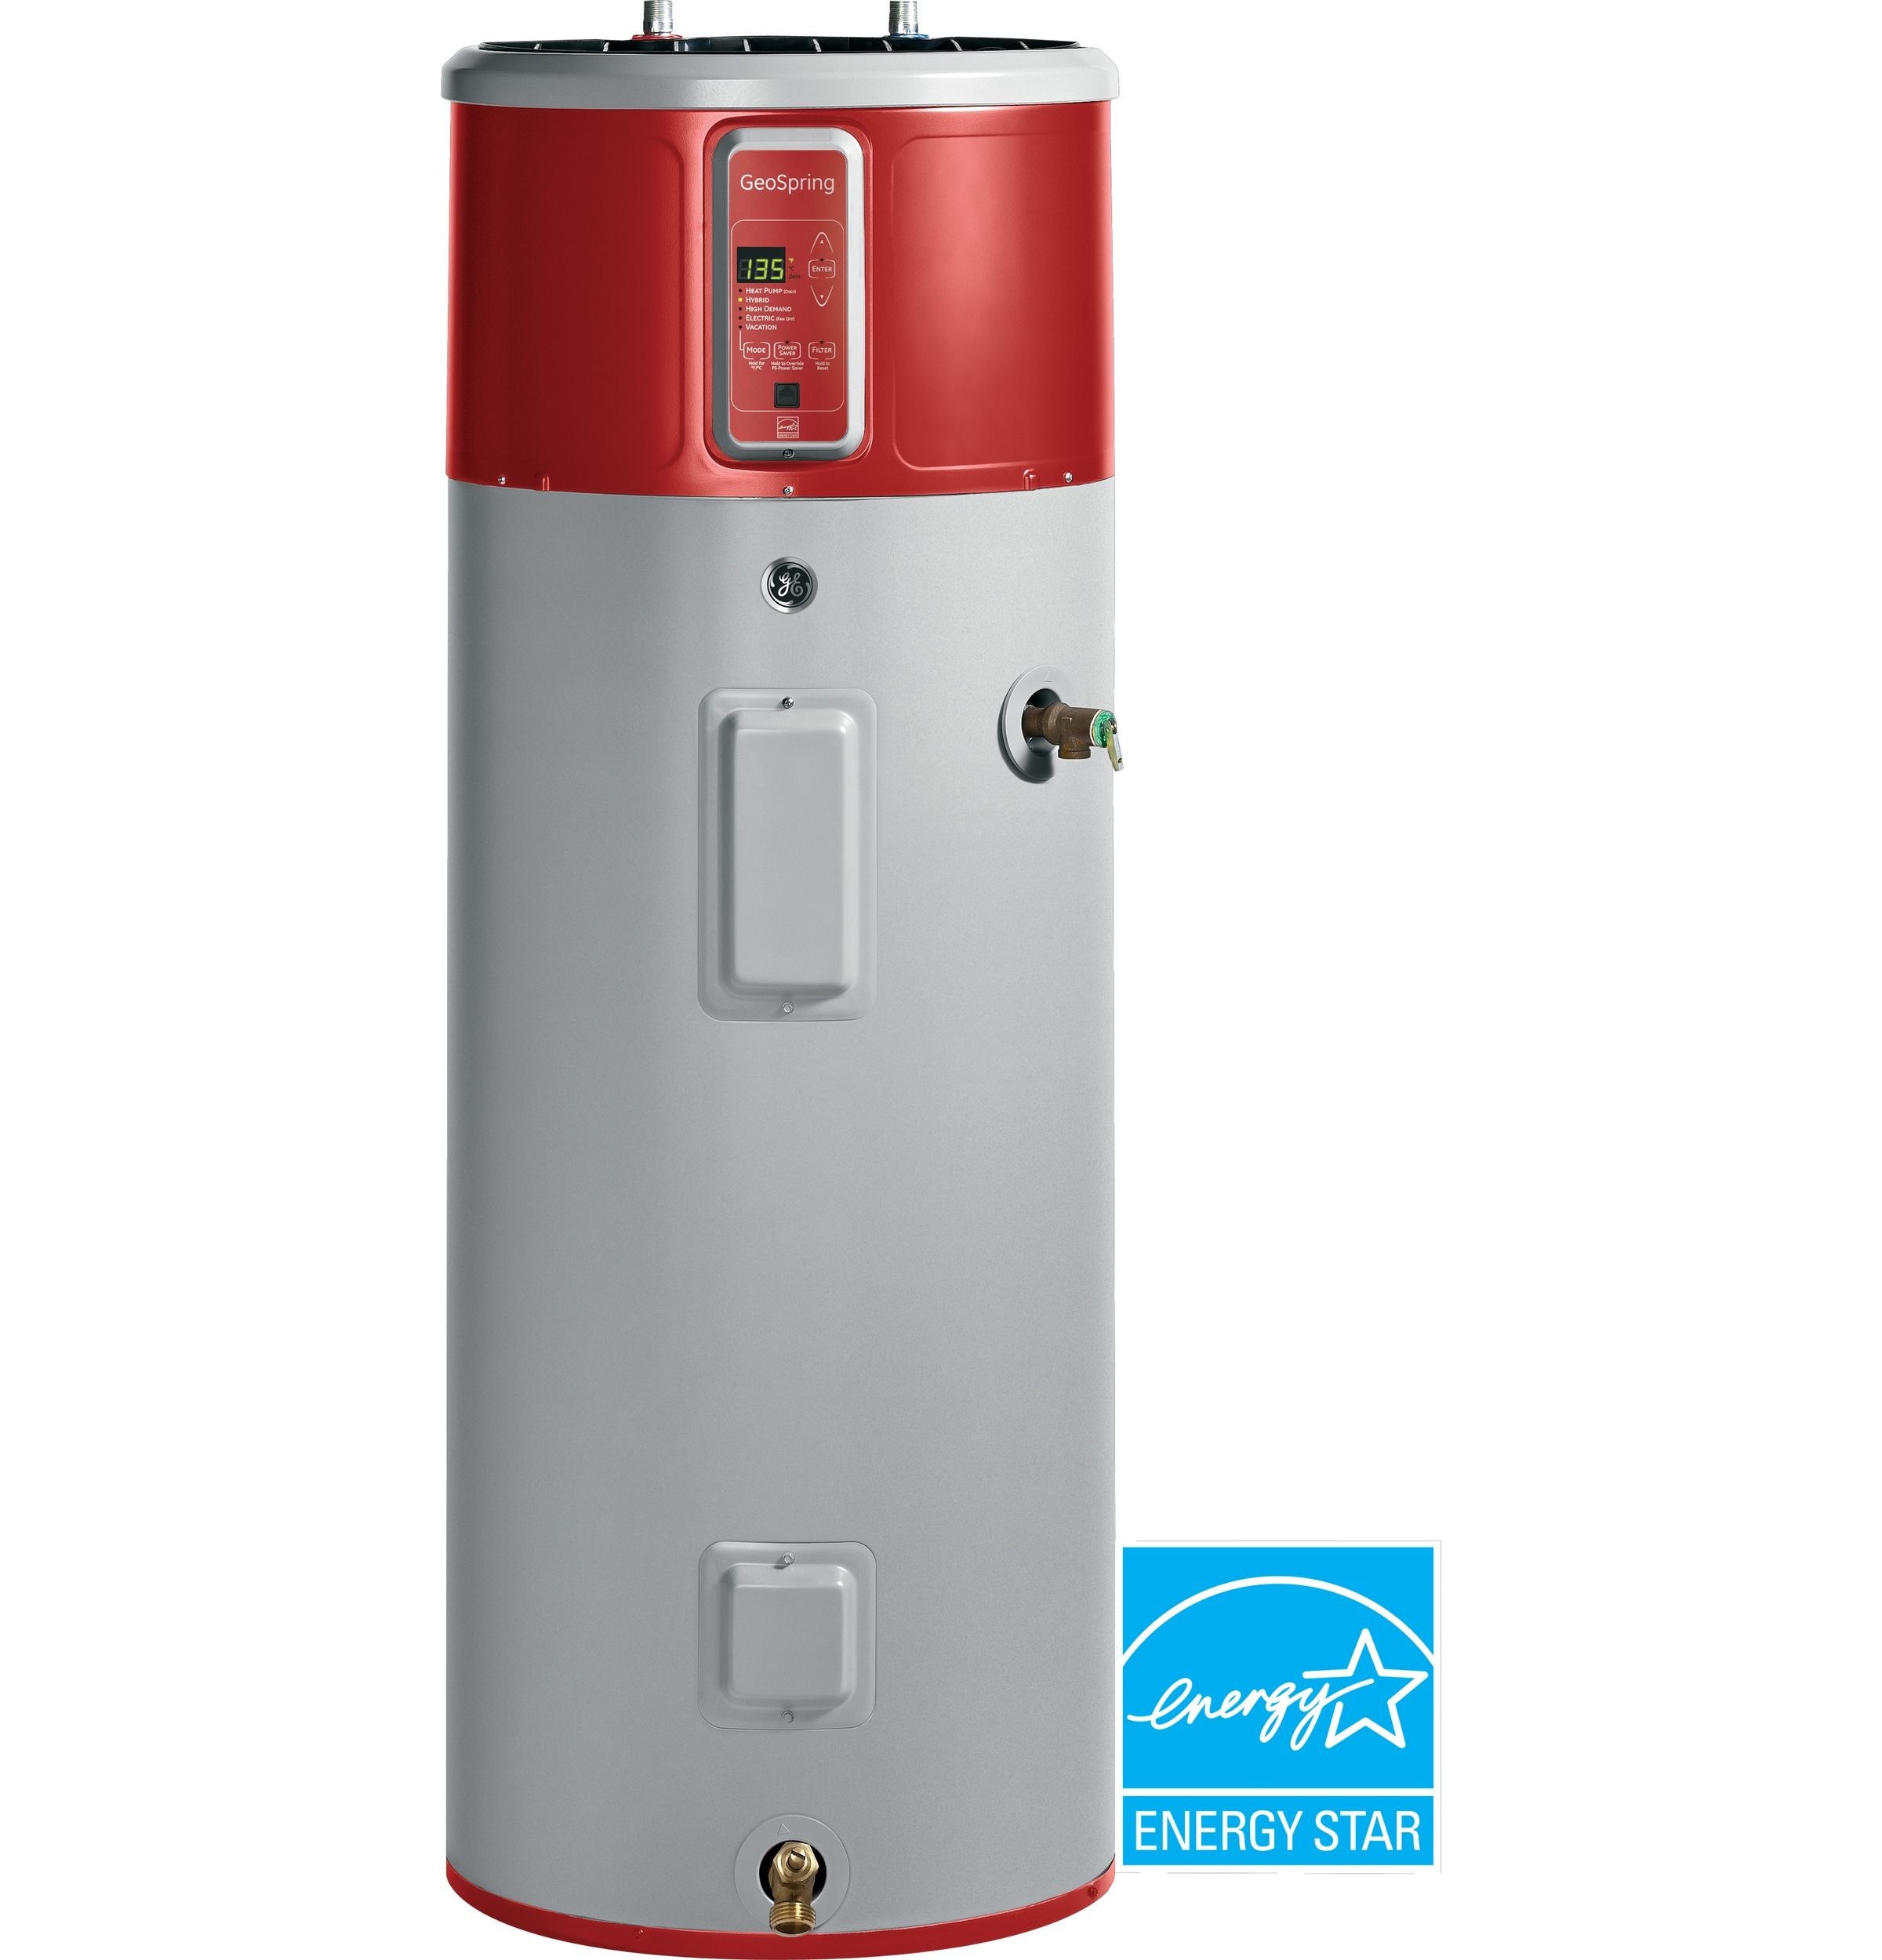 Geh50deedsr Geospring Hybrid Water Heater Ge Appliances Hybrid Water Heaters Electric Water Heater Heat Pump Water Heater